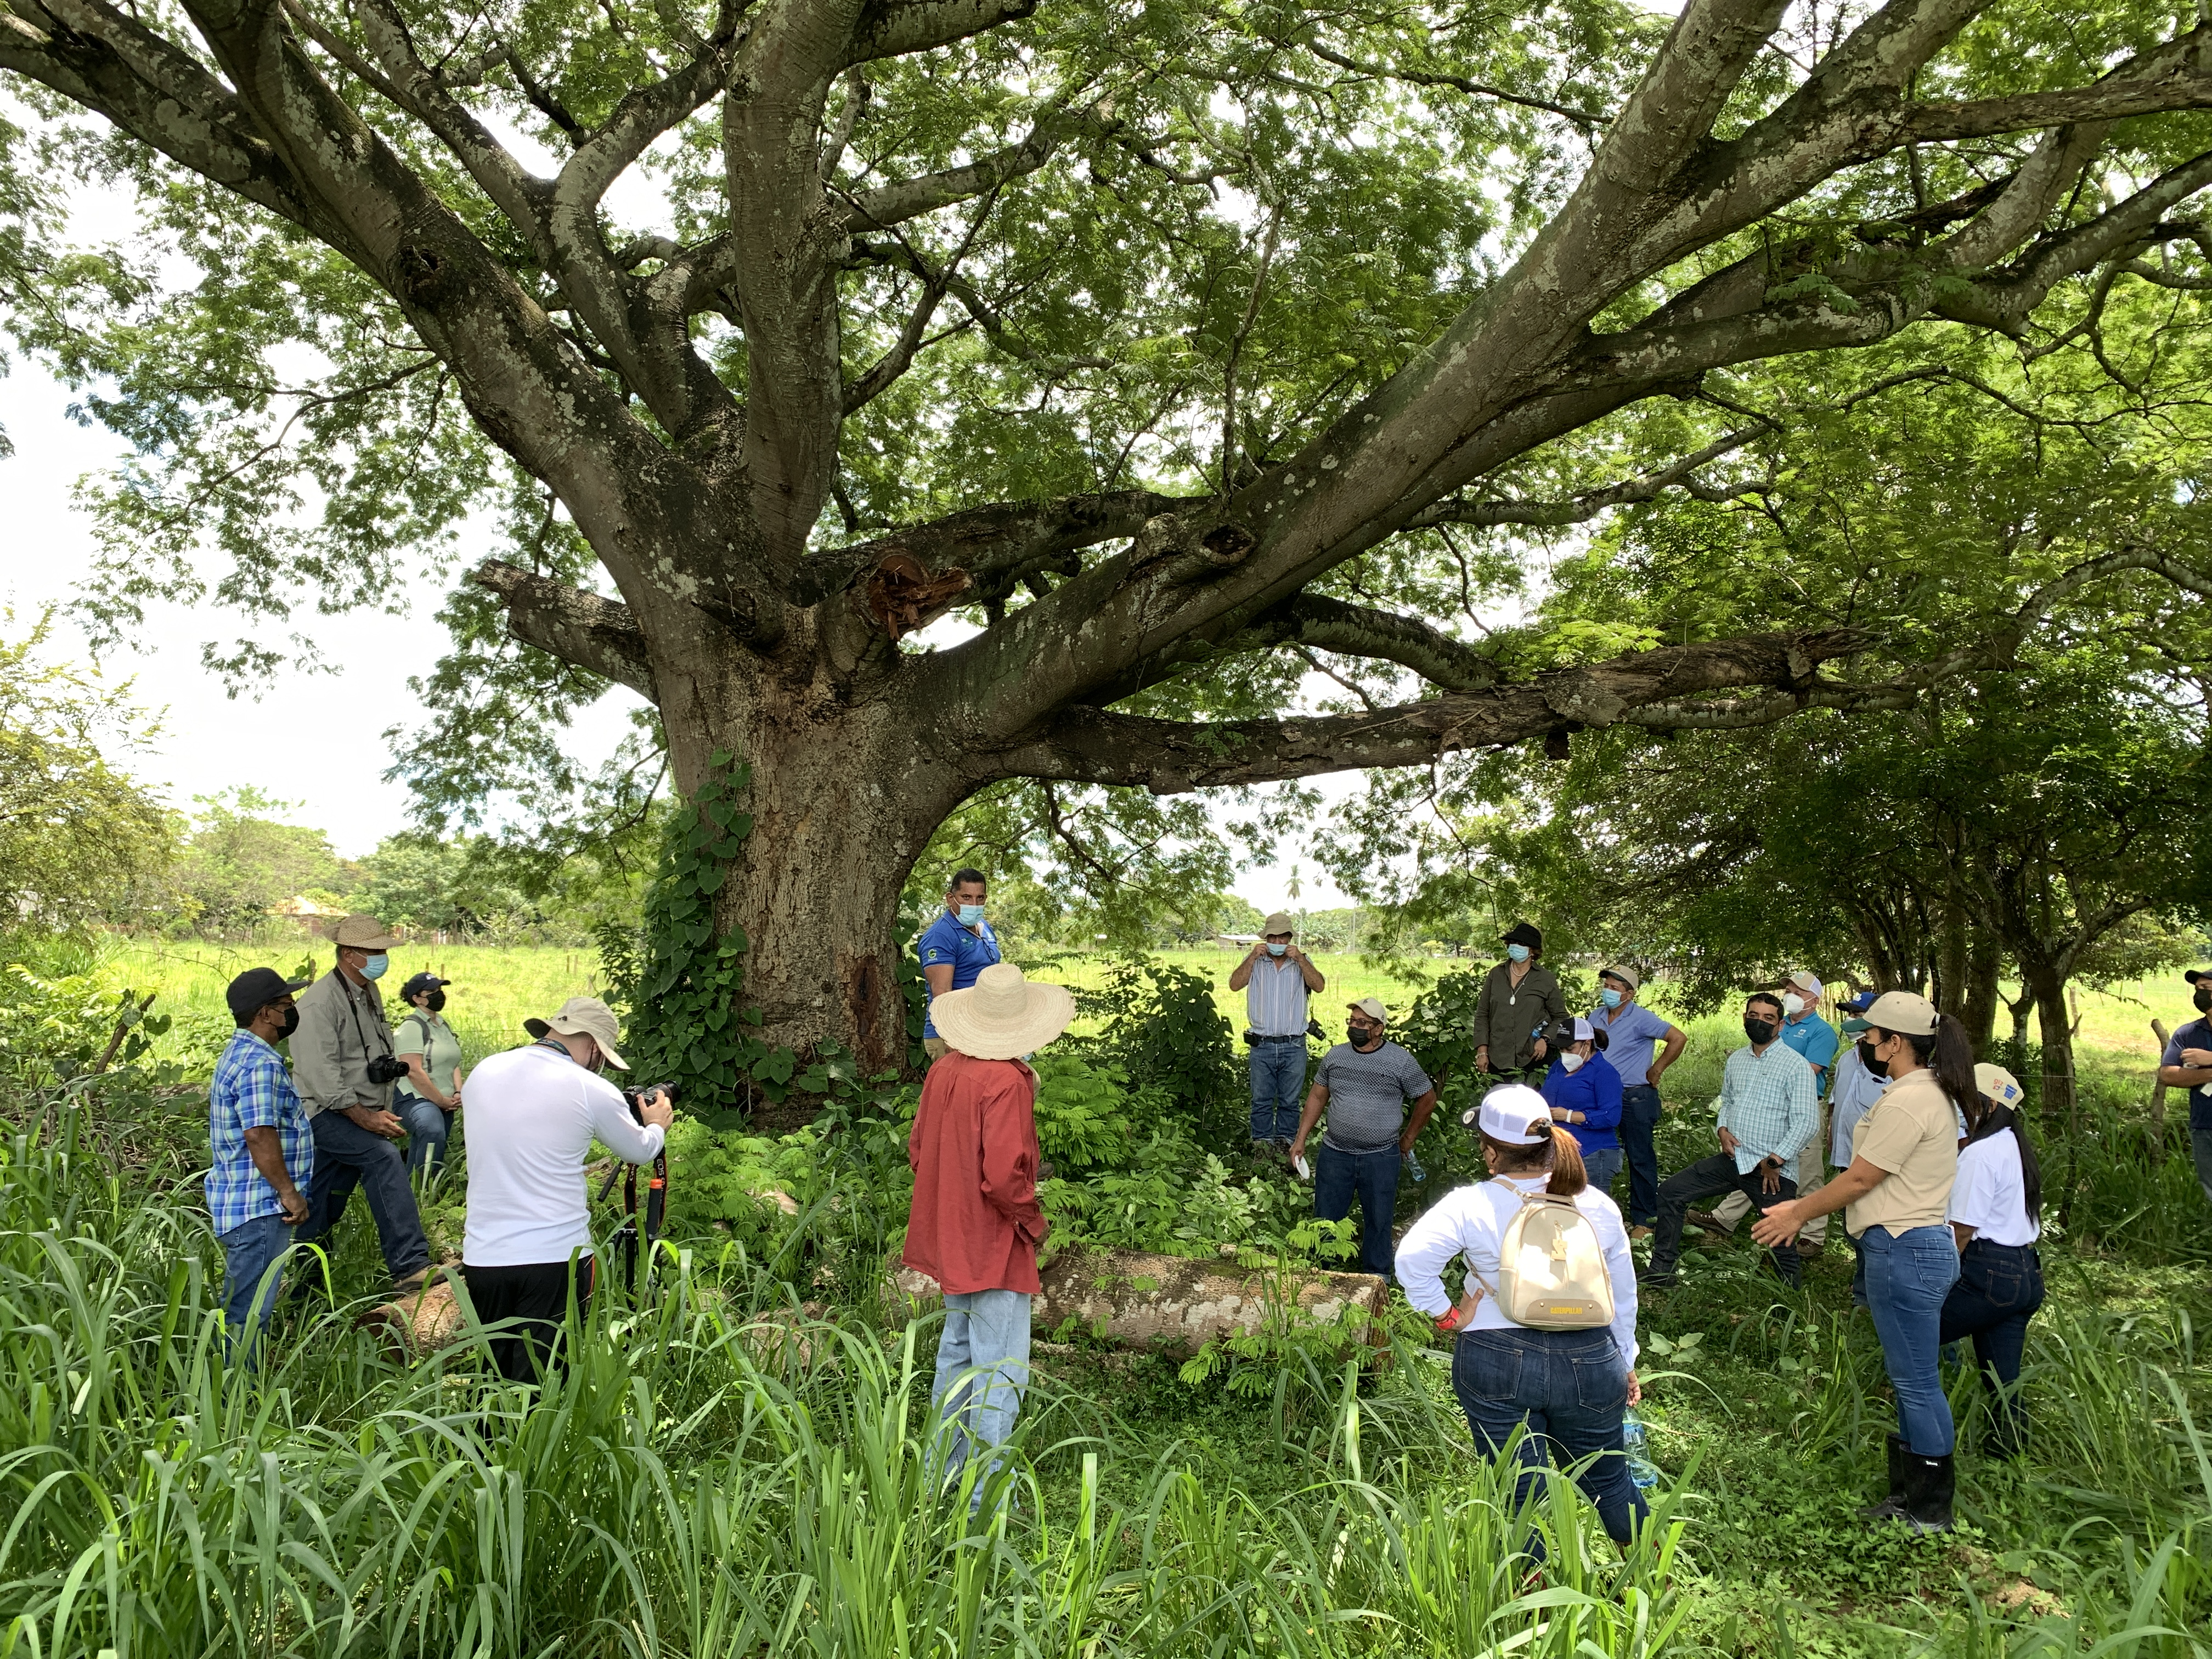 18 people surrounding a large, wide-branched tree. The people are wearing masks and are facing the tree, listening to one person talking. One man is taking a picture of the tree. They are surrounded by tall grass.